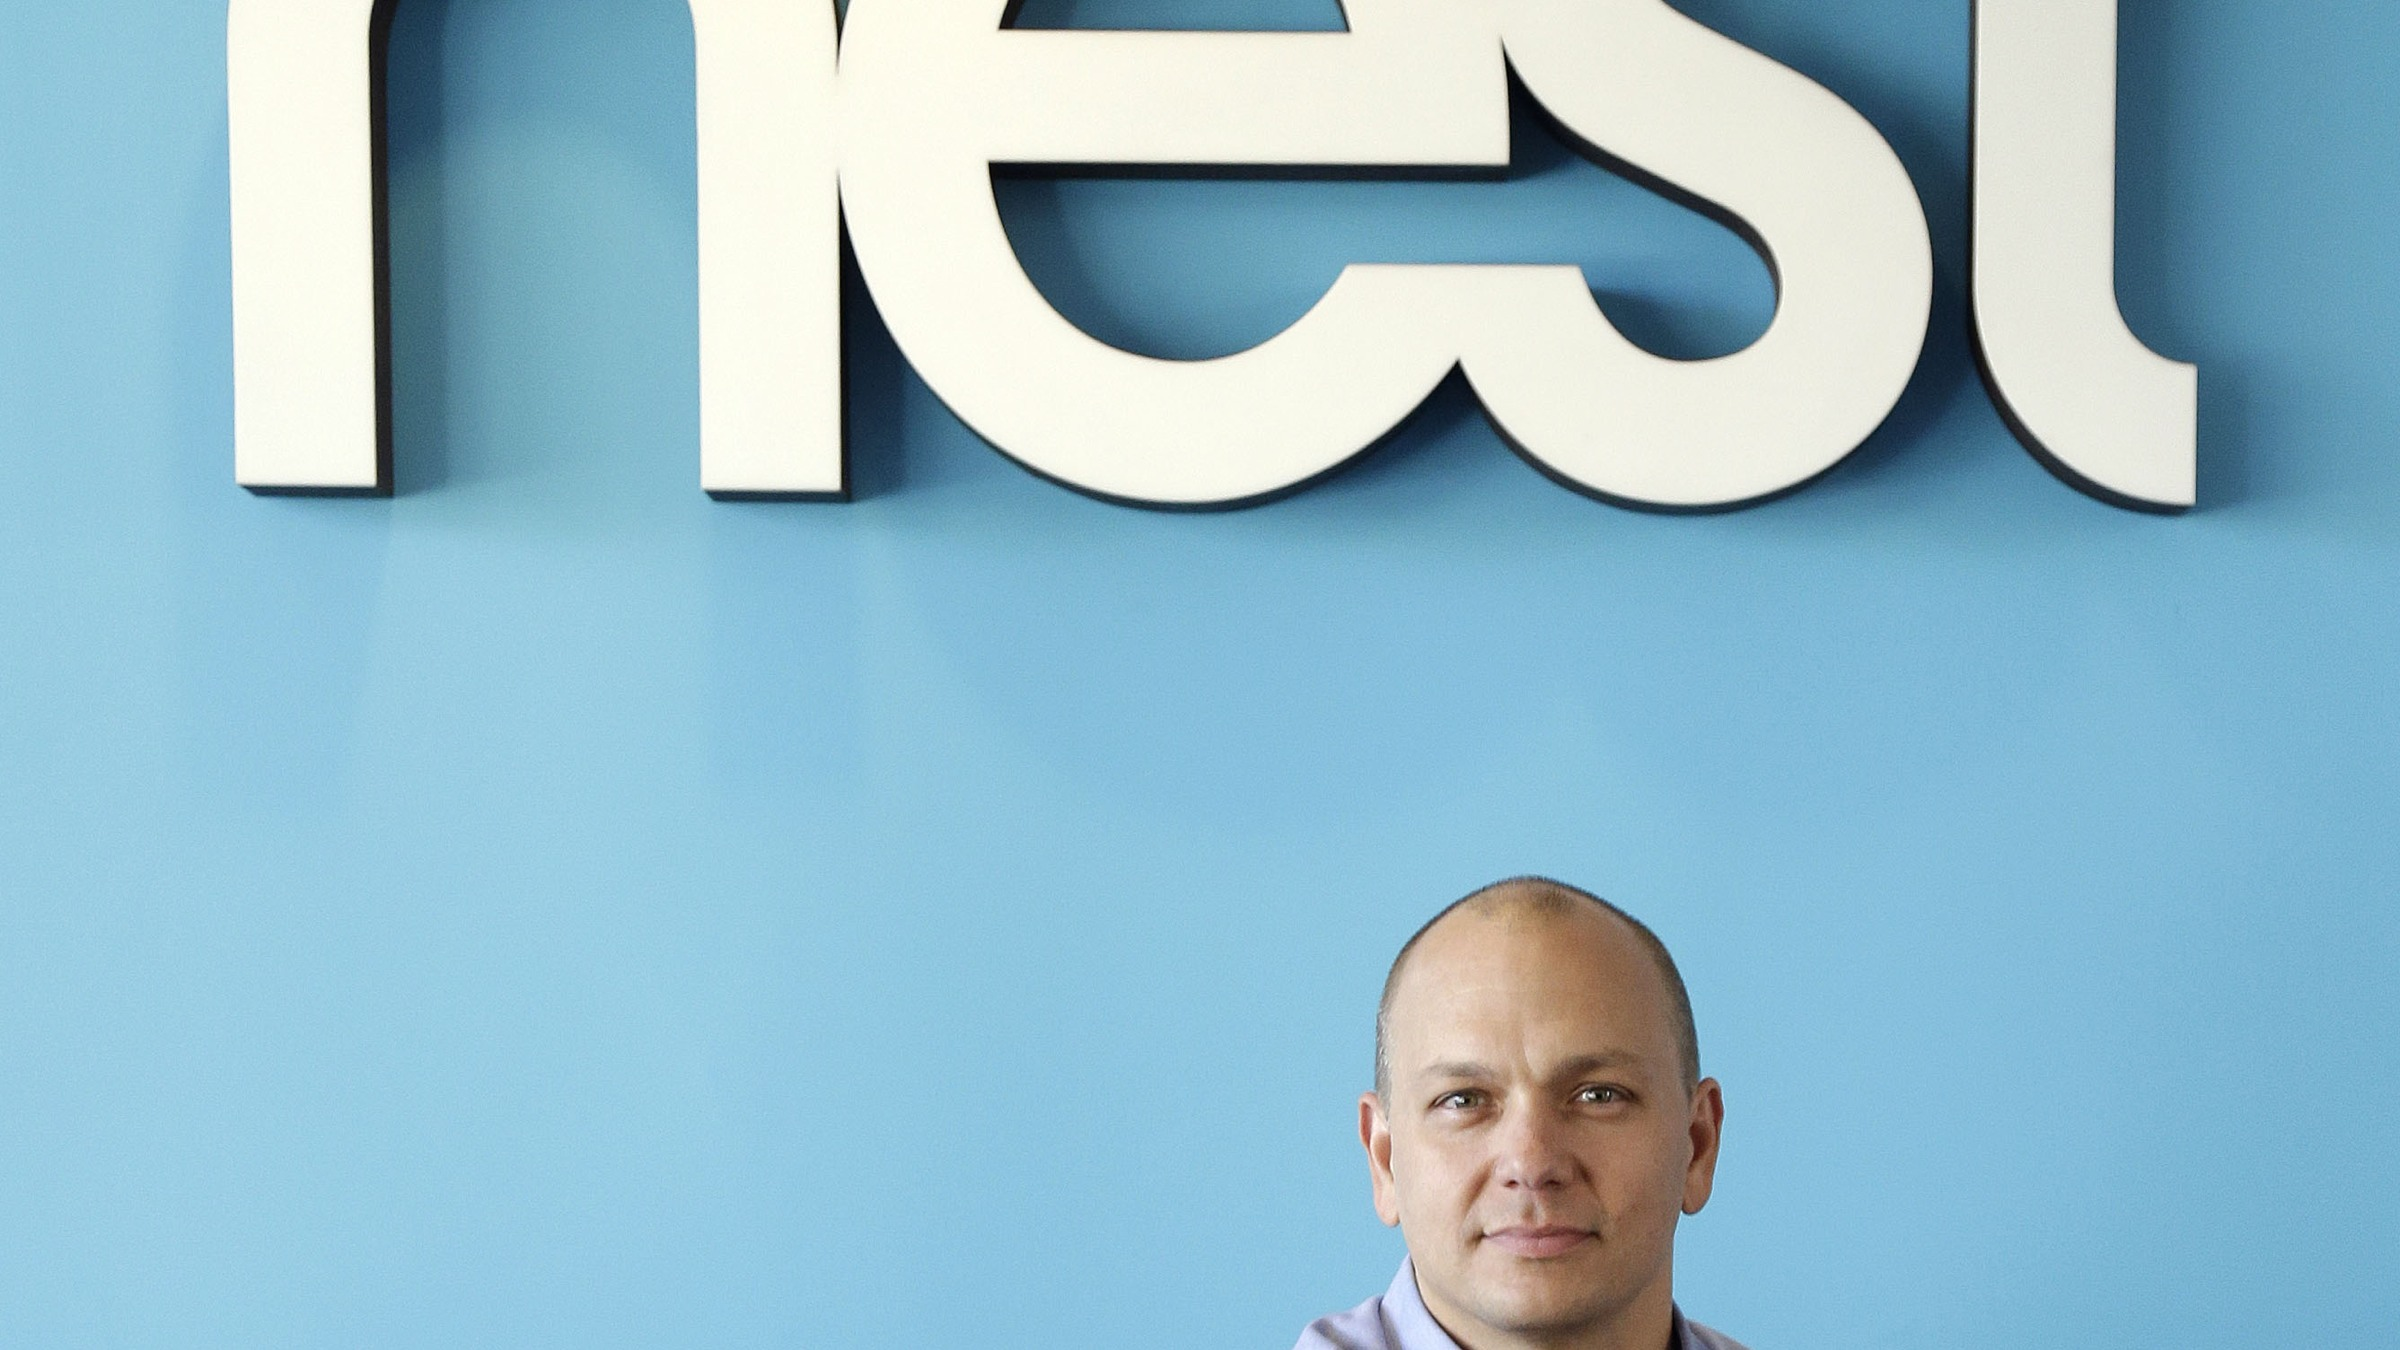 In this  Tuesday, Oct. 1, 2013, photo, Tony Fadell, Founder and CEO of Nest, poses for a portrait in the company's offices in Palo Alto, Calif. (AP Photo/Marcio Jose Sanchez)